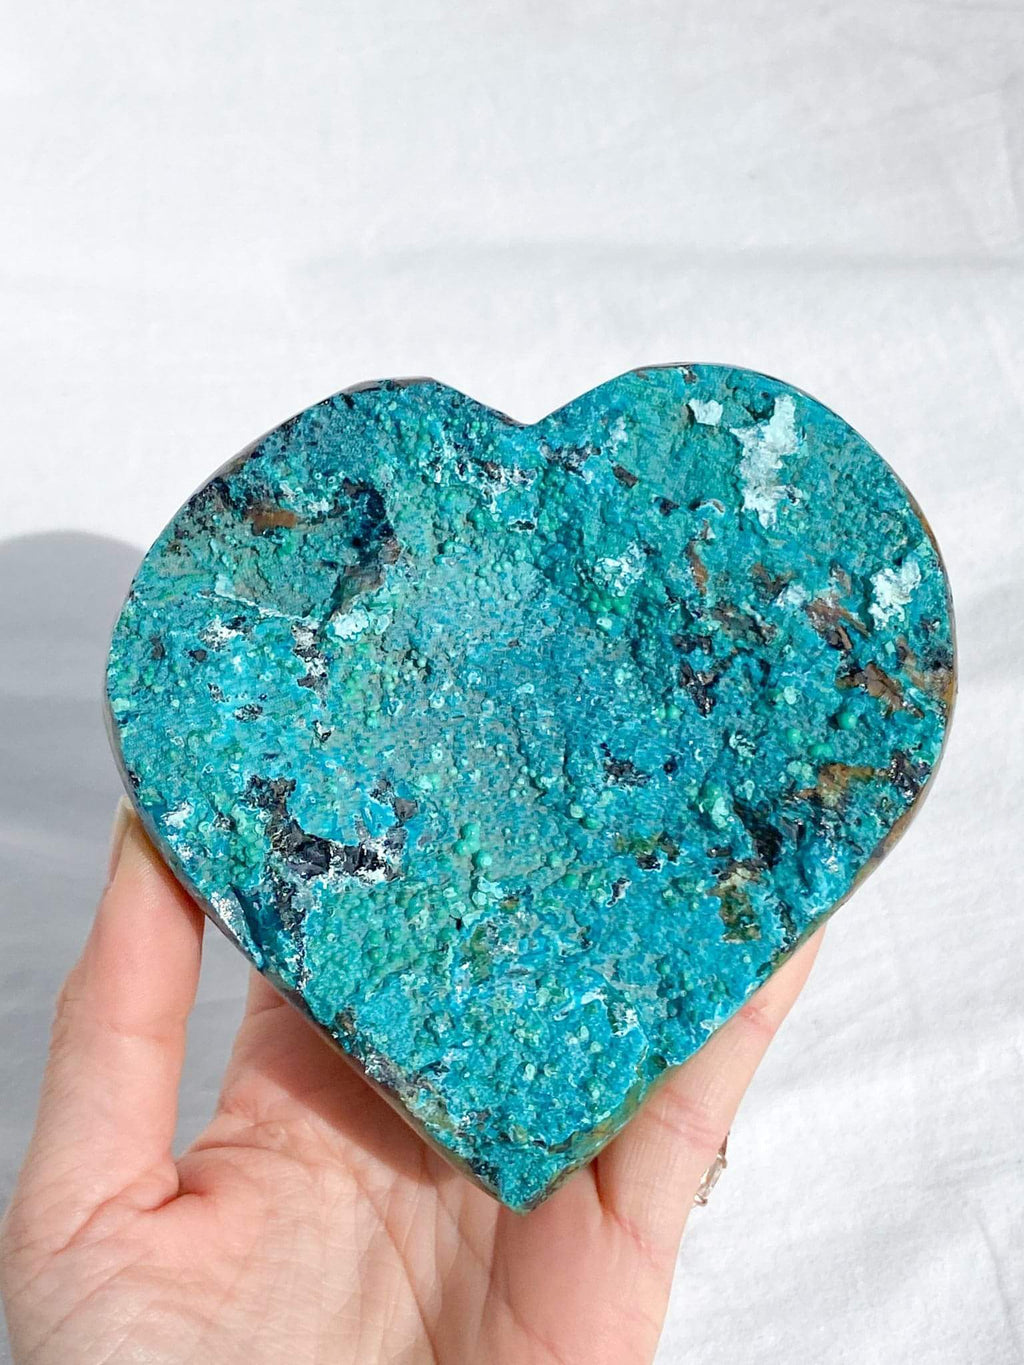 Raw Chrysocolla + Malachite in Matrix Heart - Unearthed Crystals